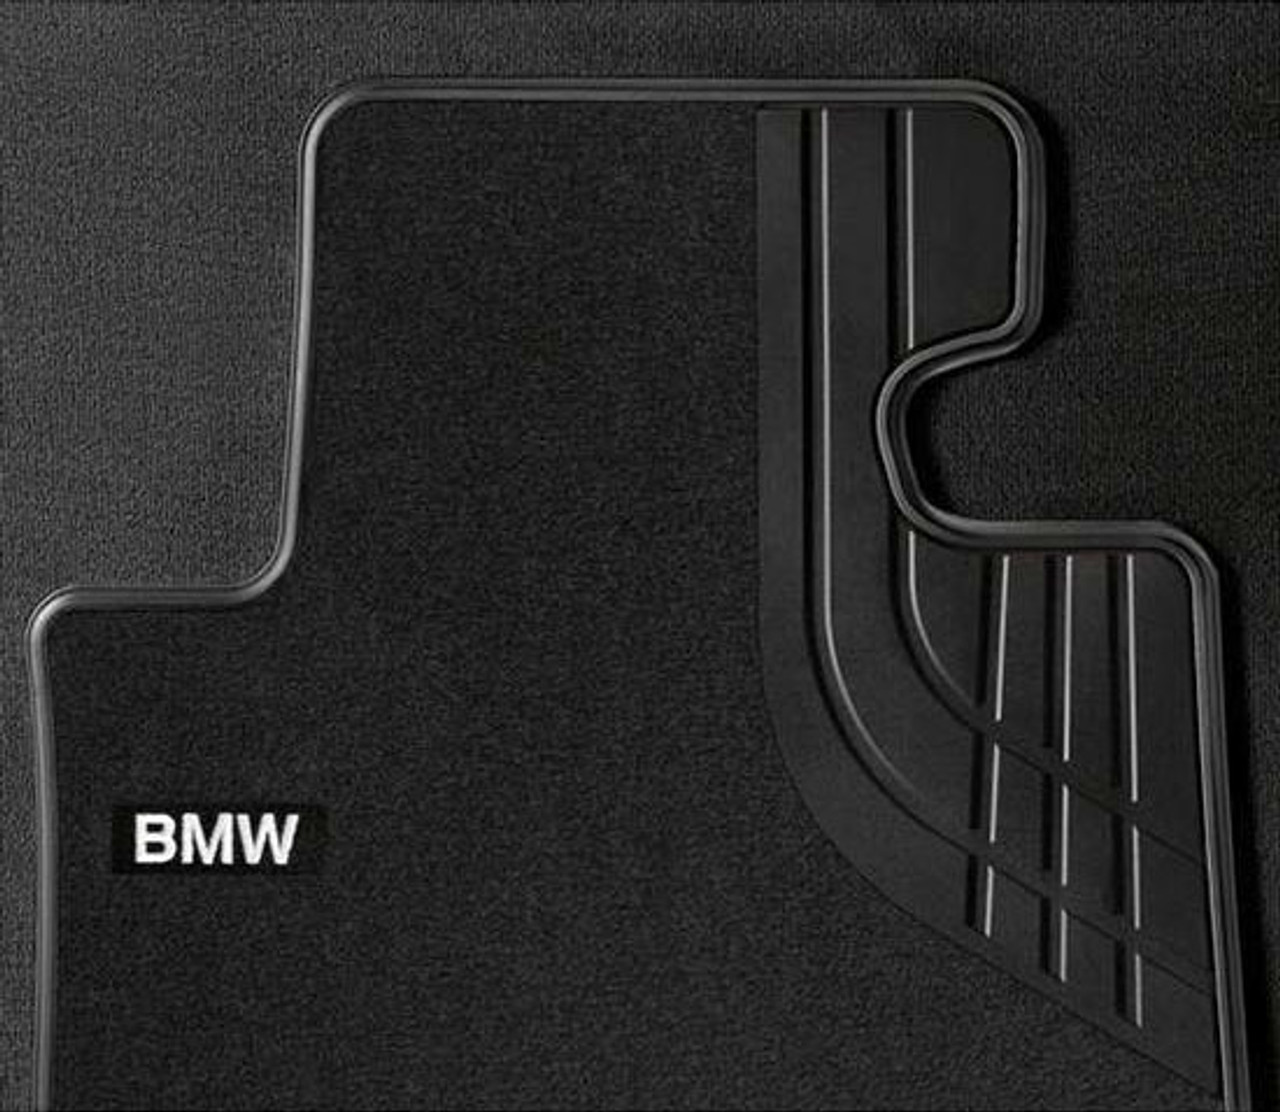 BMW Modern Line Black Carpeted Floor Mats for F30 F31 F34 F80 3 Series, FRONT